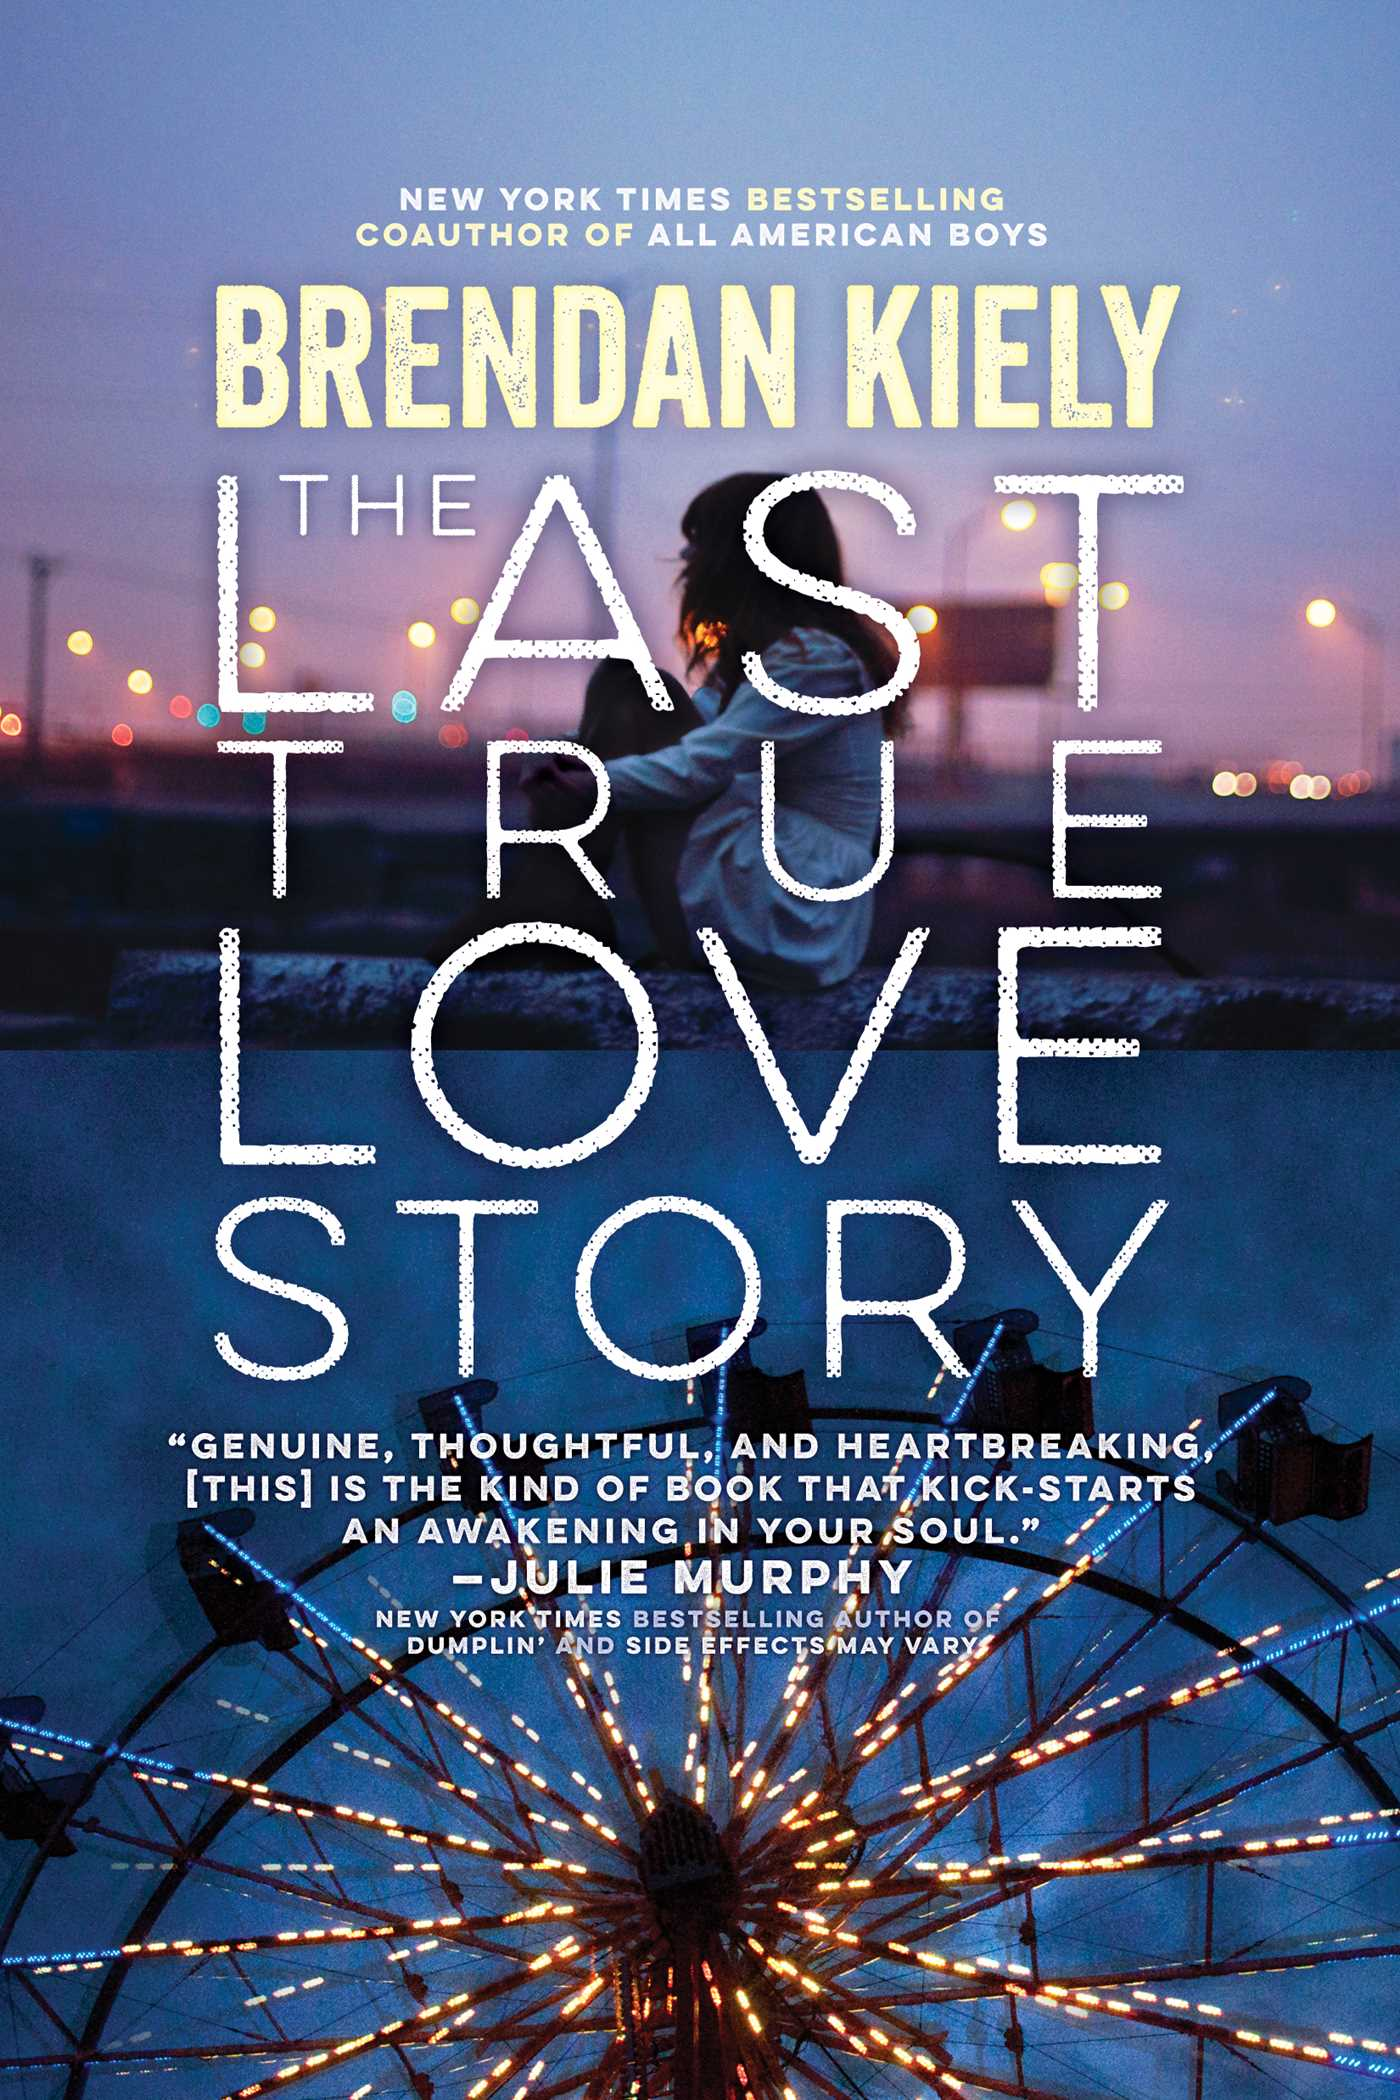 Book Cover Love : Brendan kiely official publisher page simon schuster uk